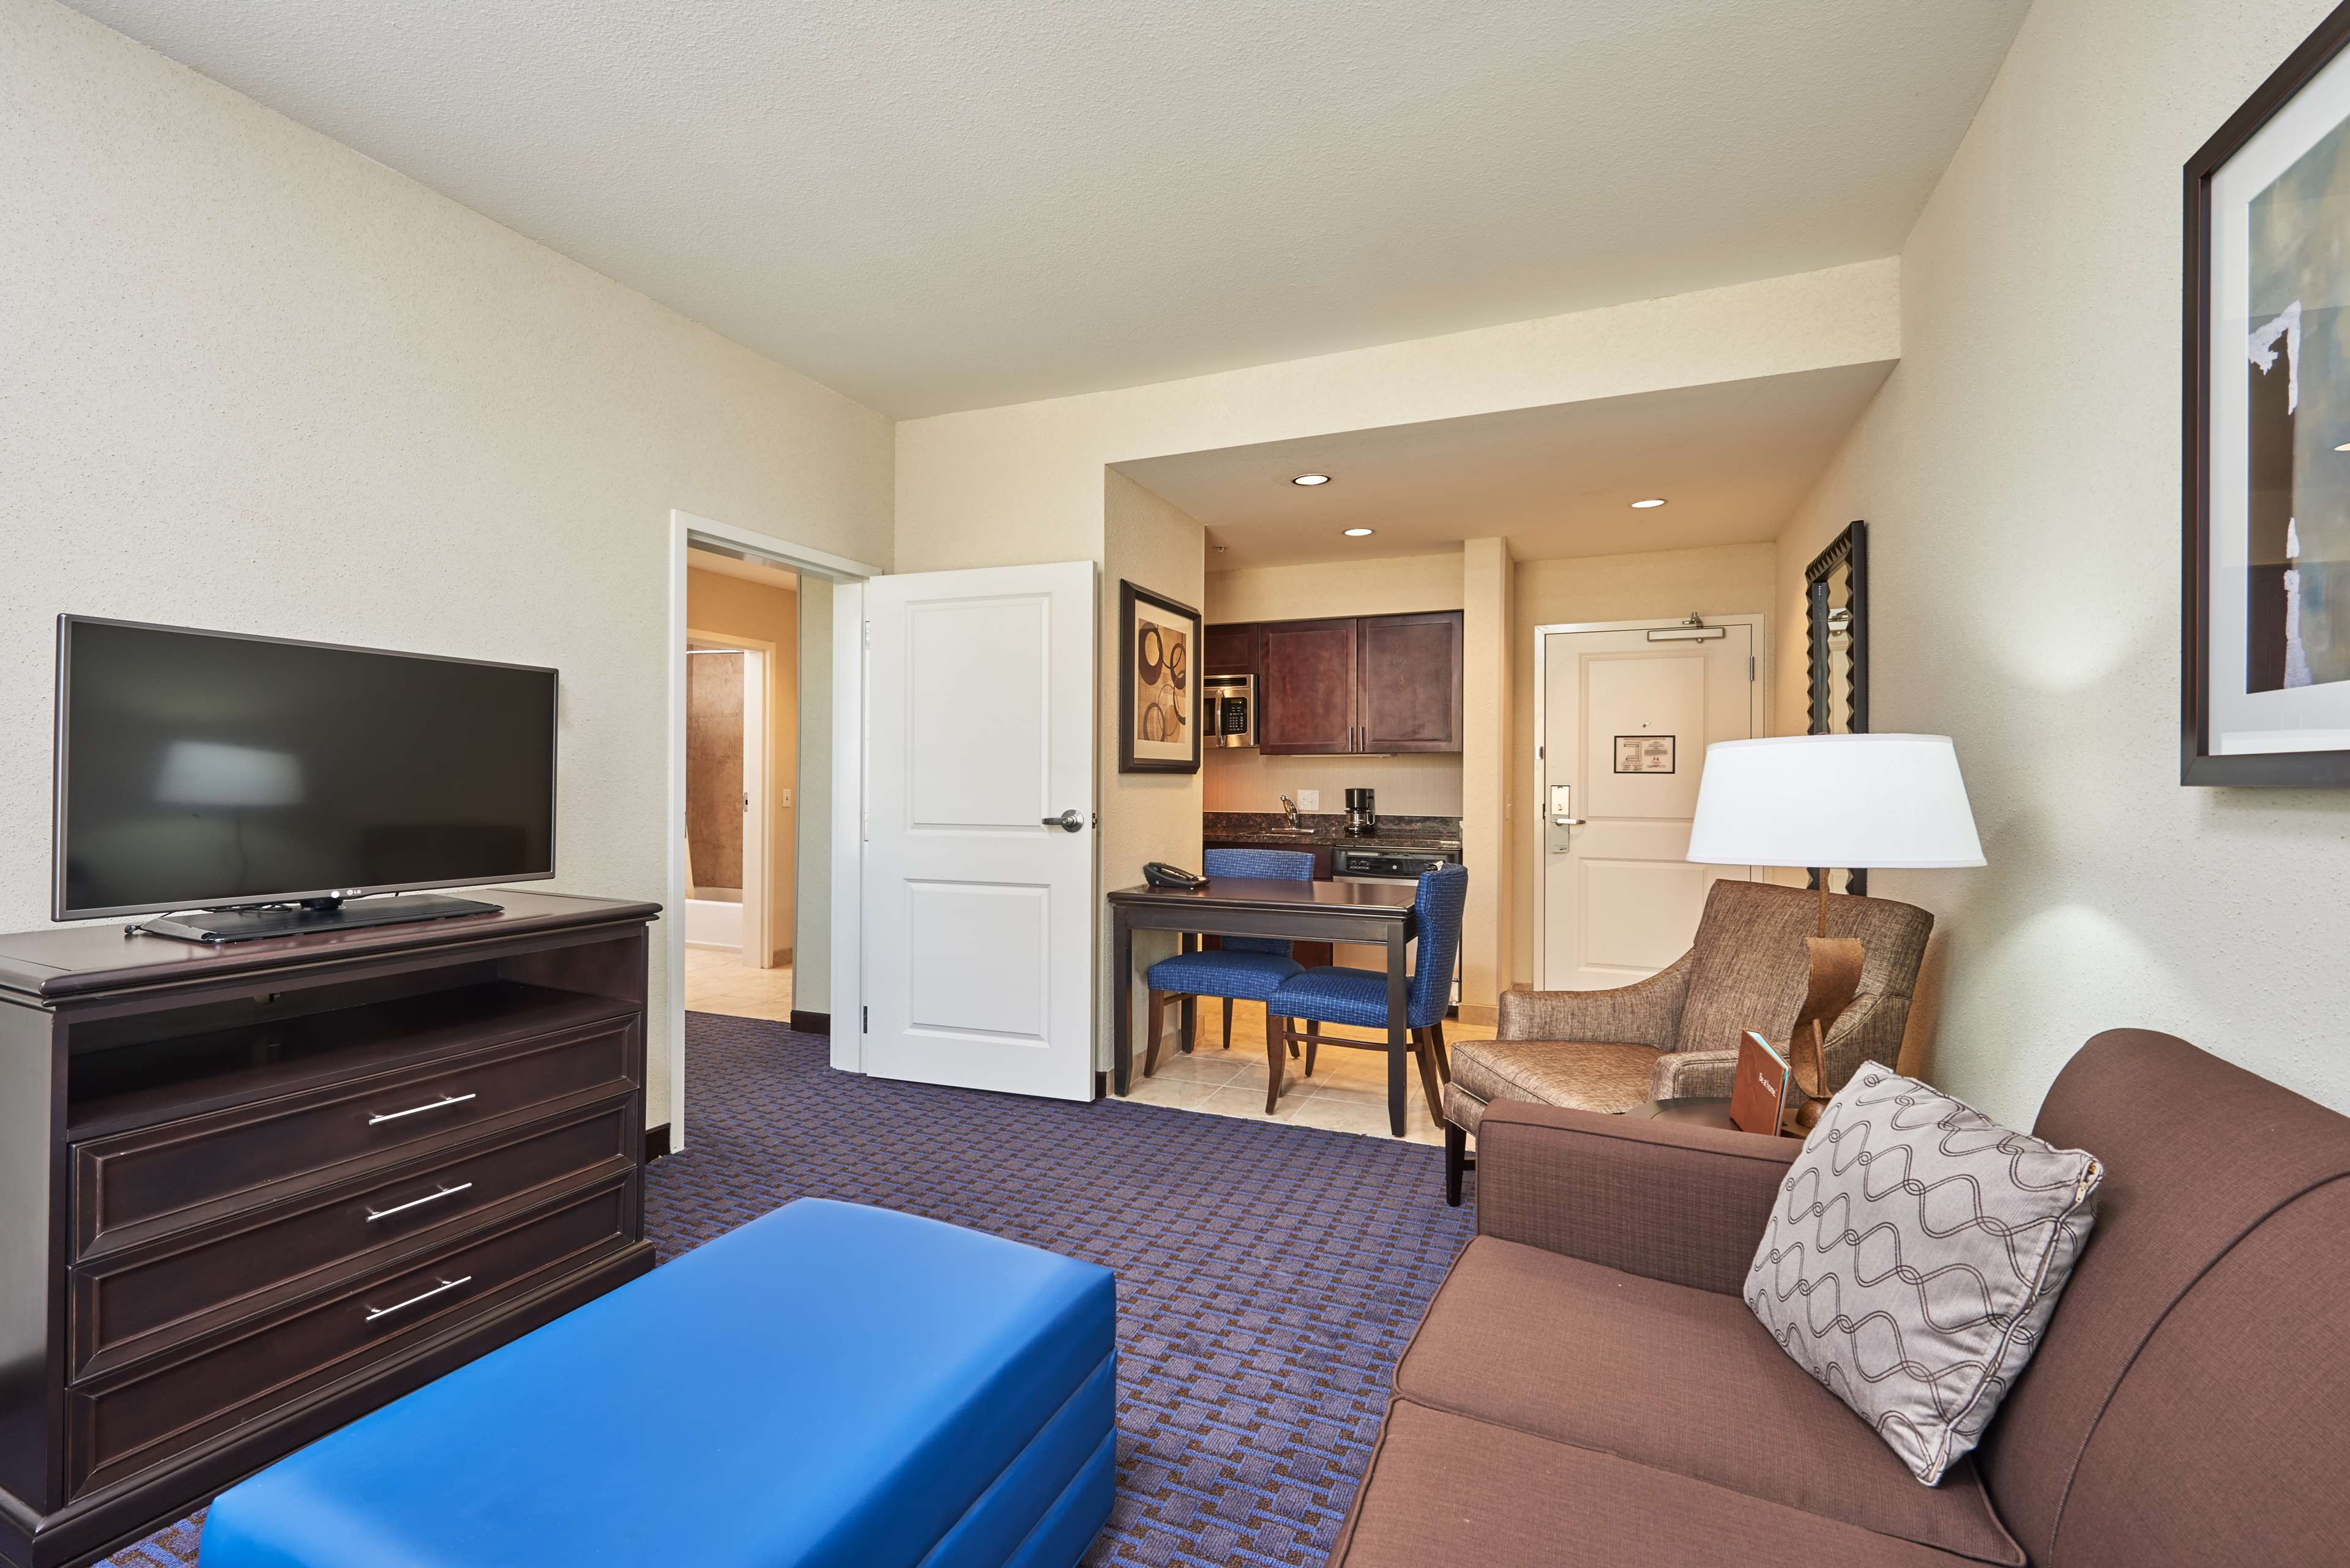 Homewood Suites by Hilton Odessa image 13